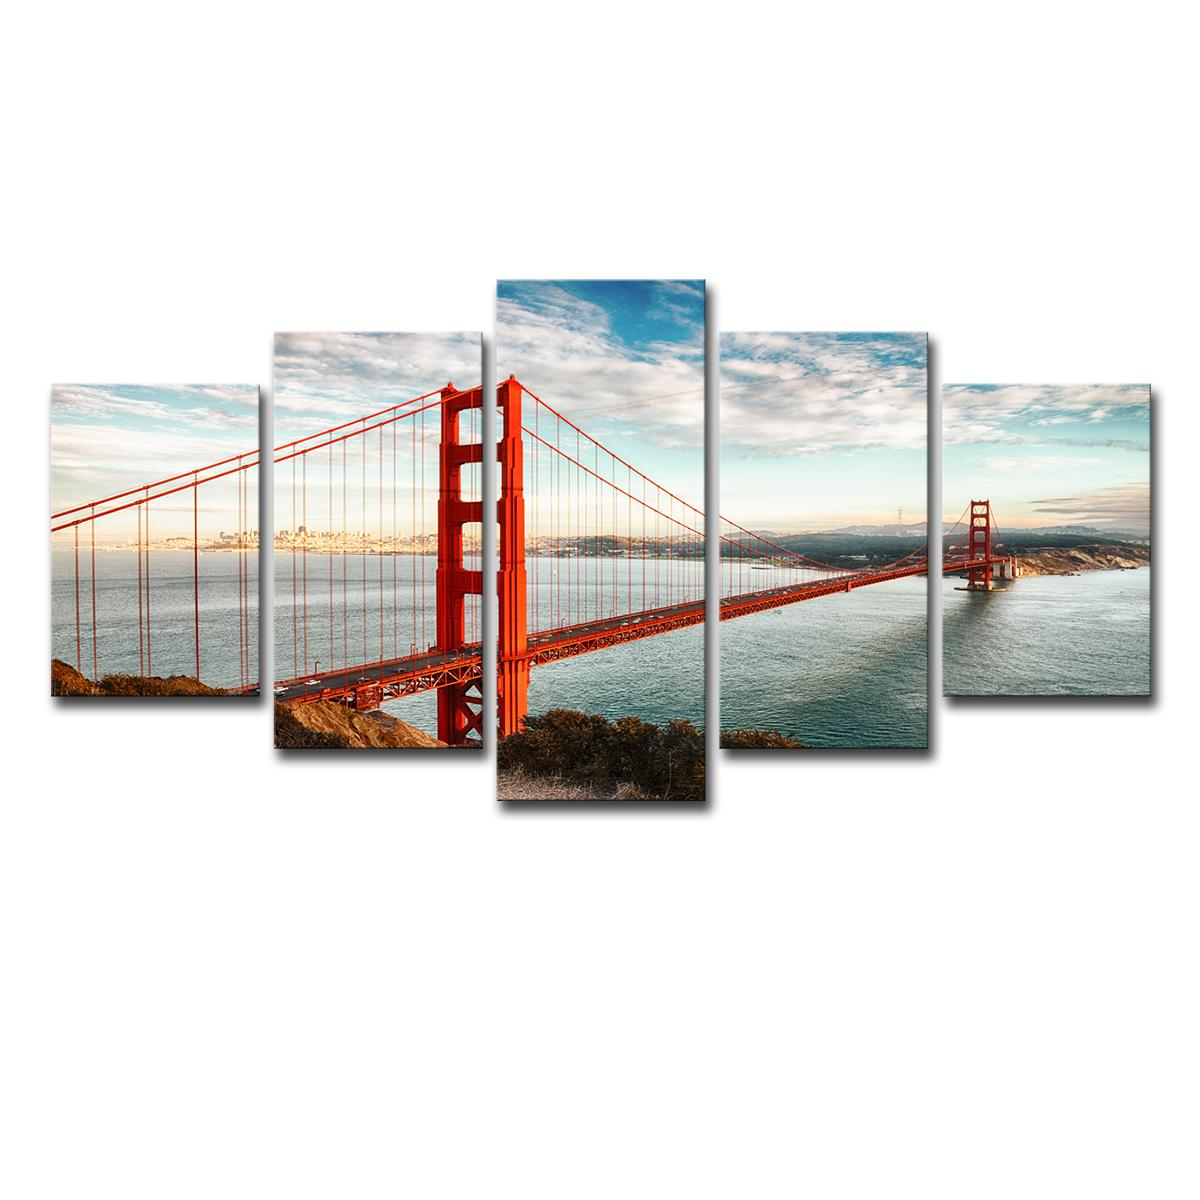 Wall Art Home Decor Framework Canvas Pictures 5 Pieces Golden Gate Bridge Landscape Paintings For Living Room HD Prints Posters